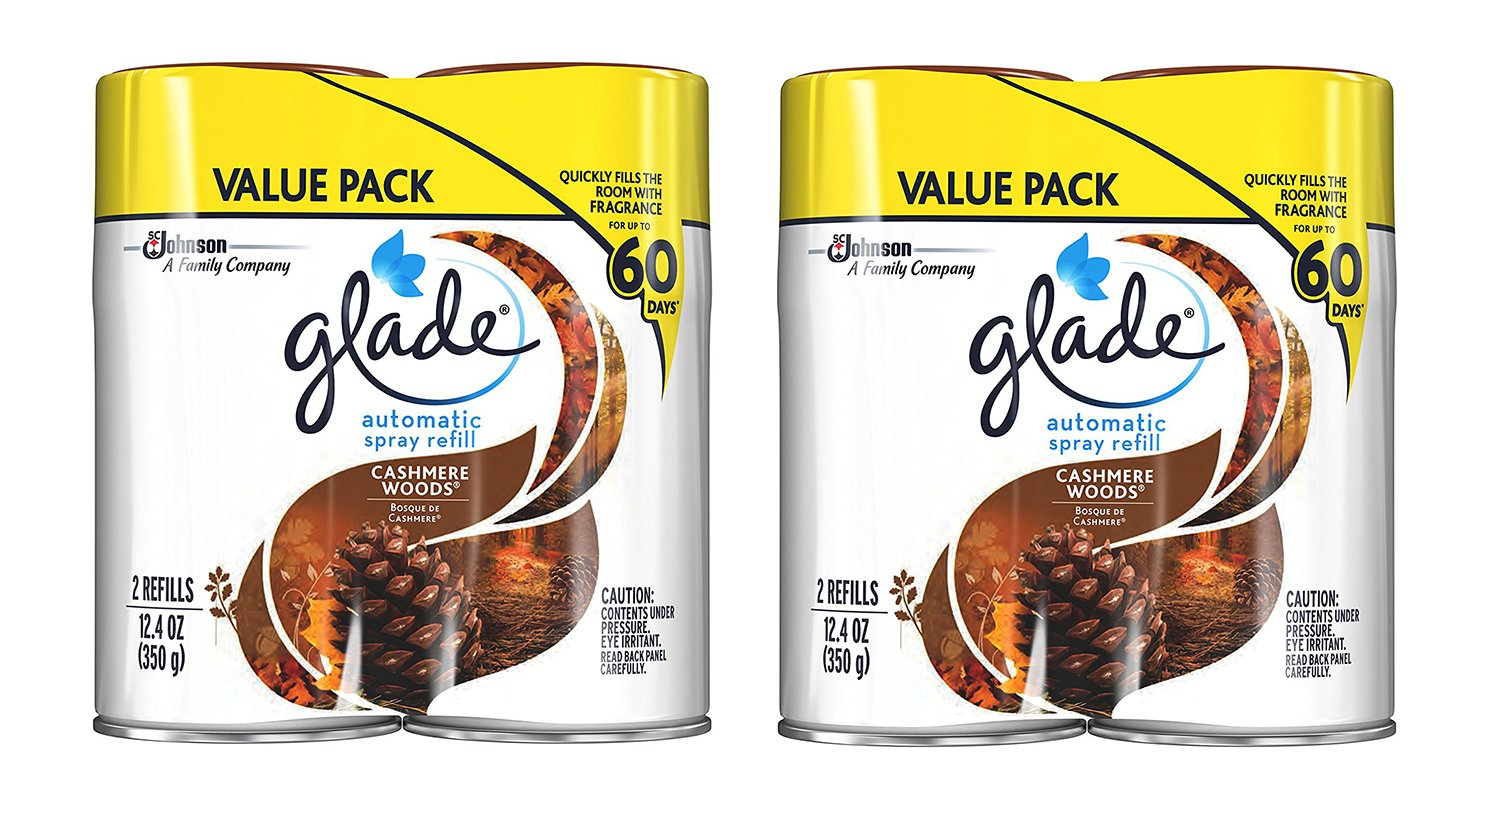 Glade Automatic Spray QBiOO Air Freshener Refill, Cashmere Woods, 2 Count (2 Pack)